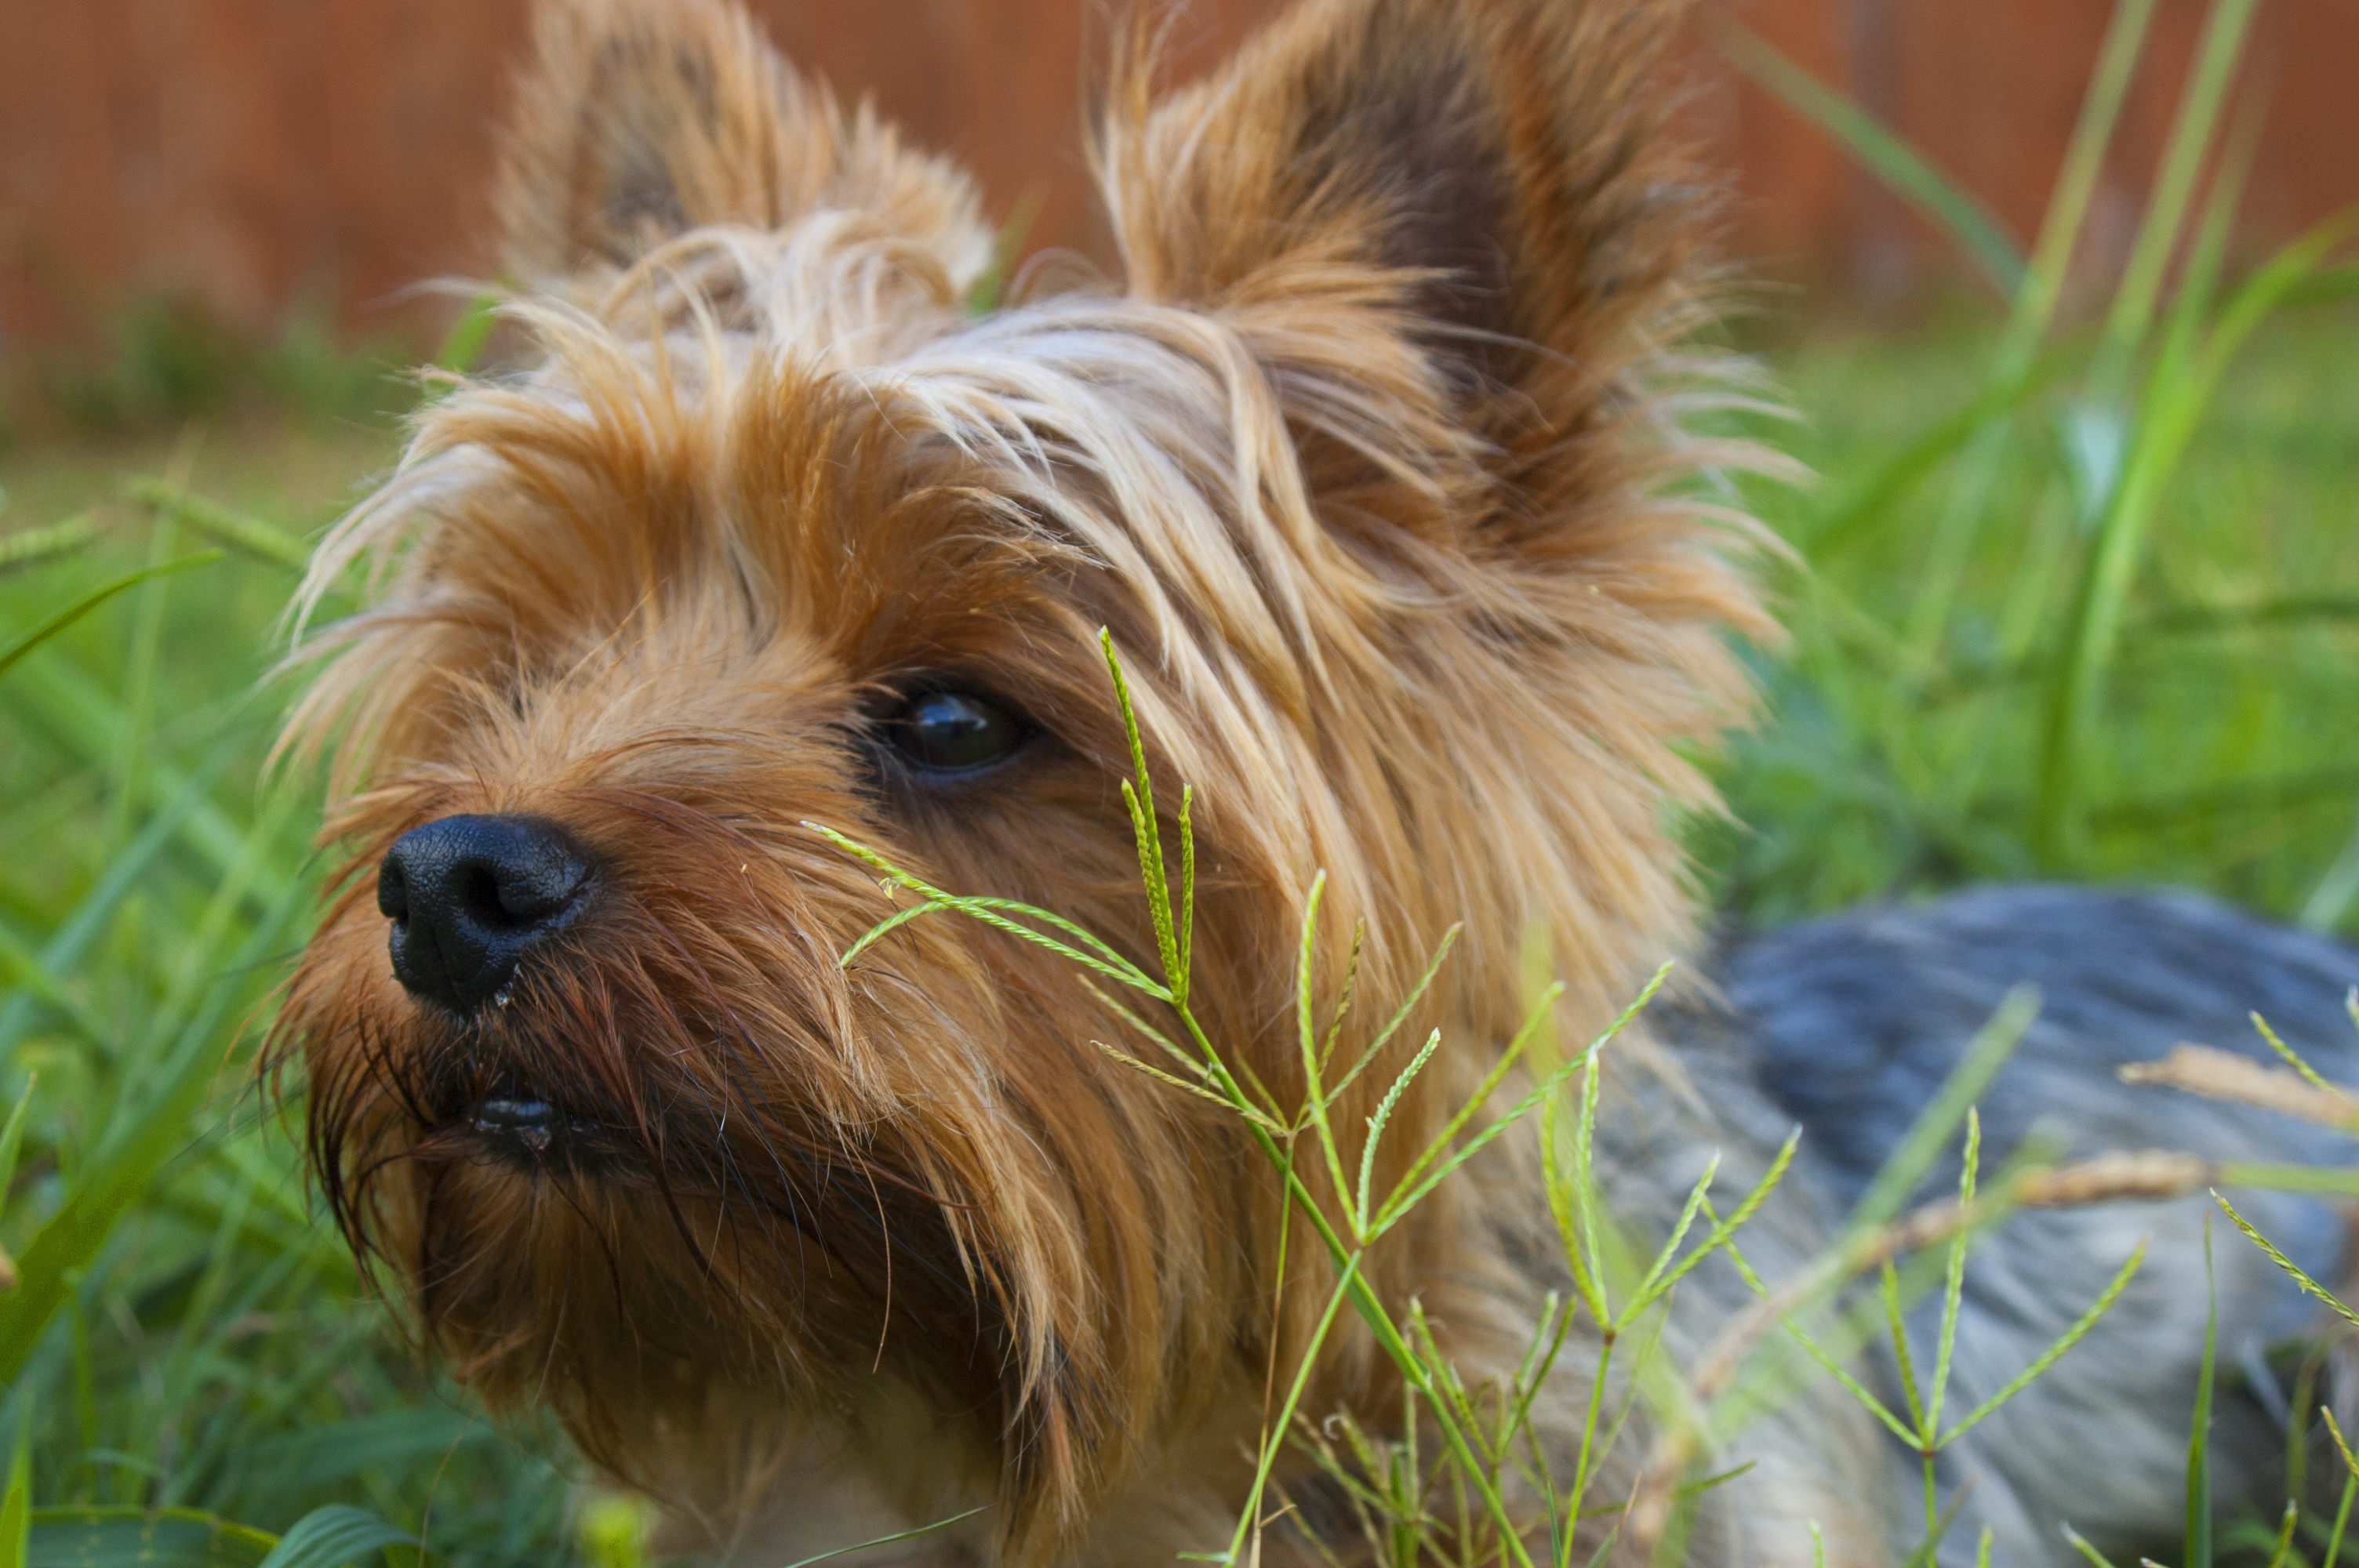 List of poisonous plants for dogs